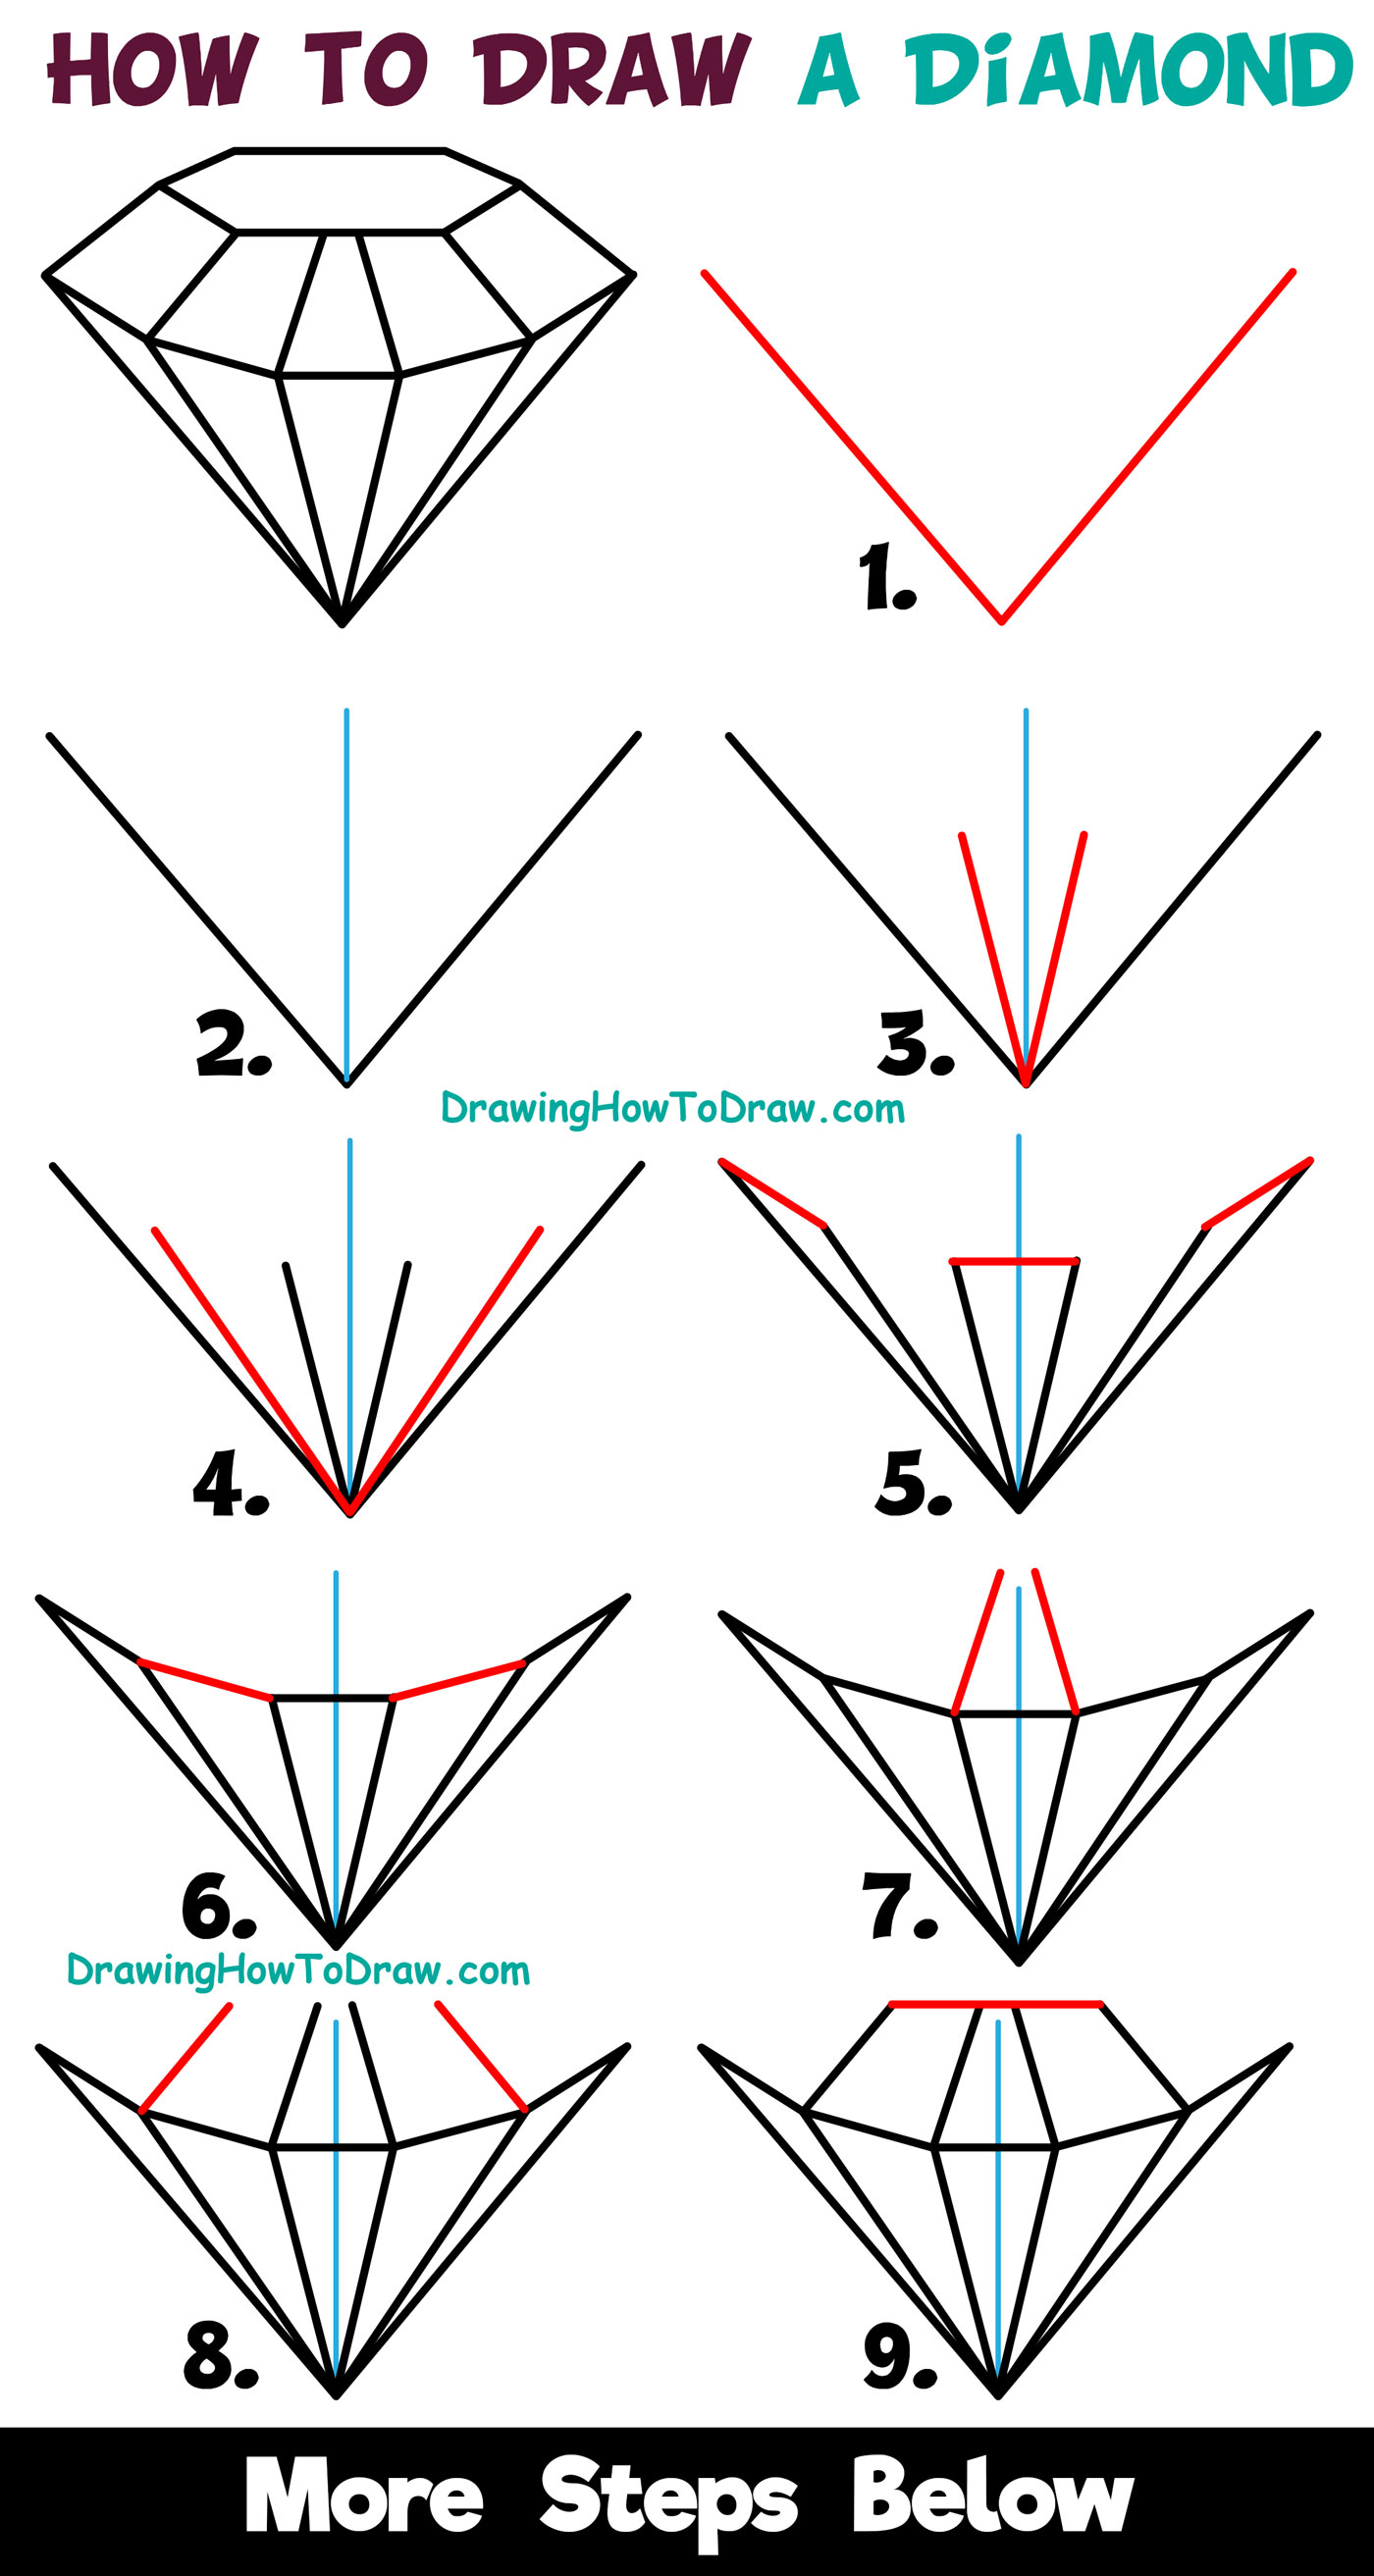 hight resolution of how to draw a diamond easy step by step drawing tutorial for kids beginners